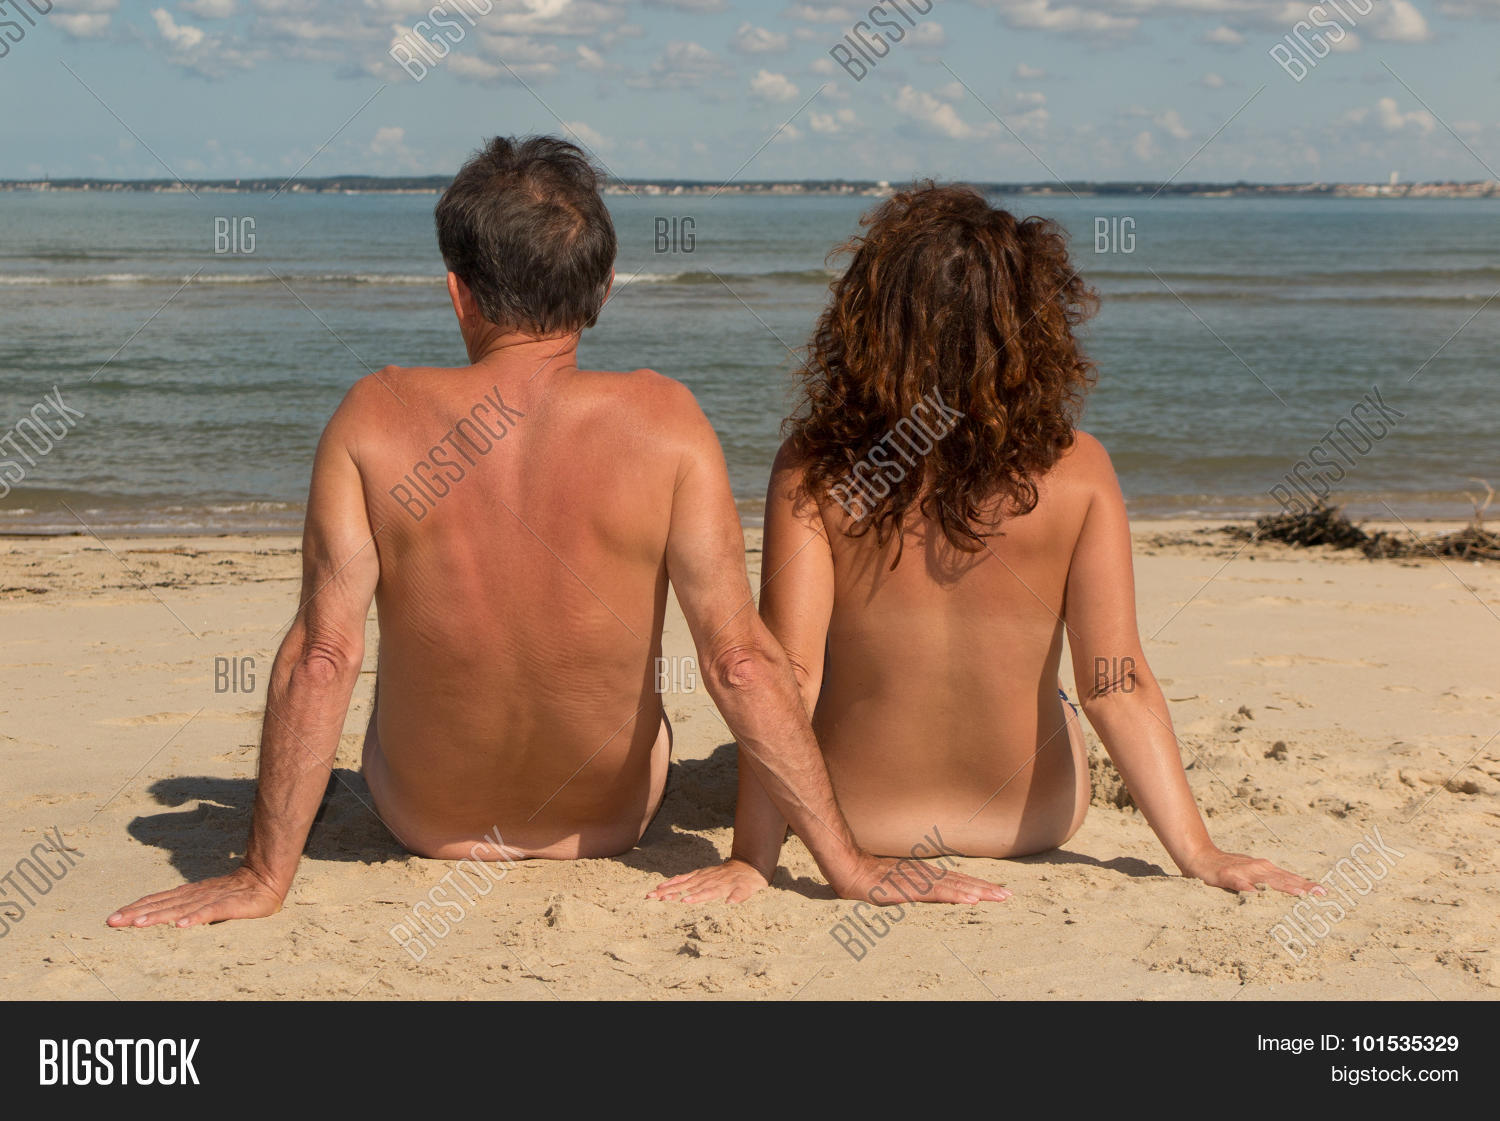 Free pictures of naked couples